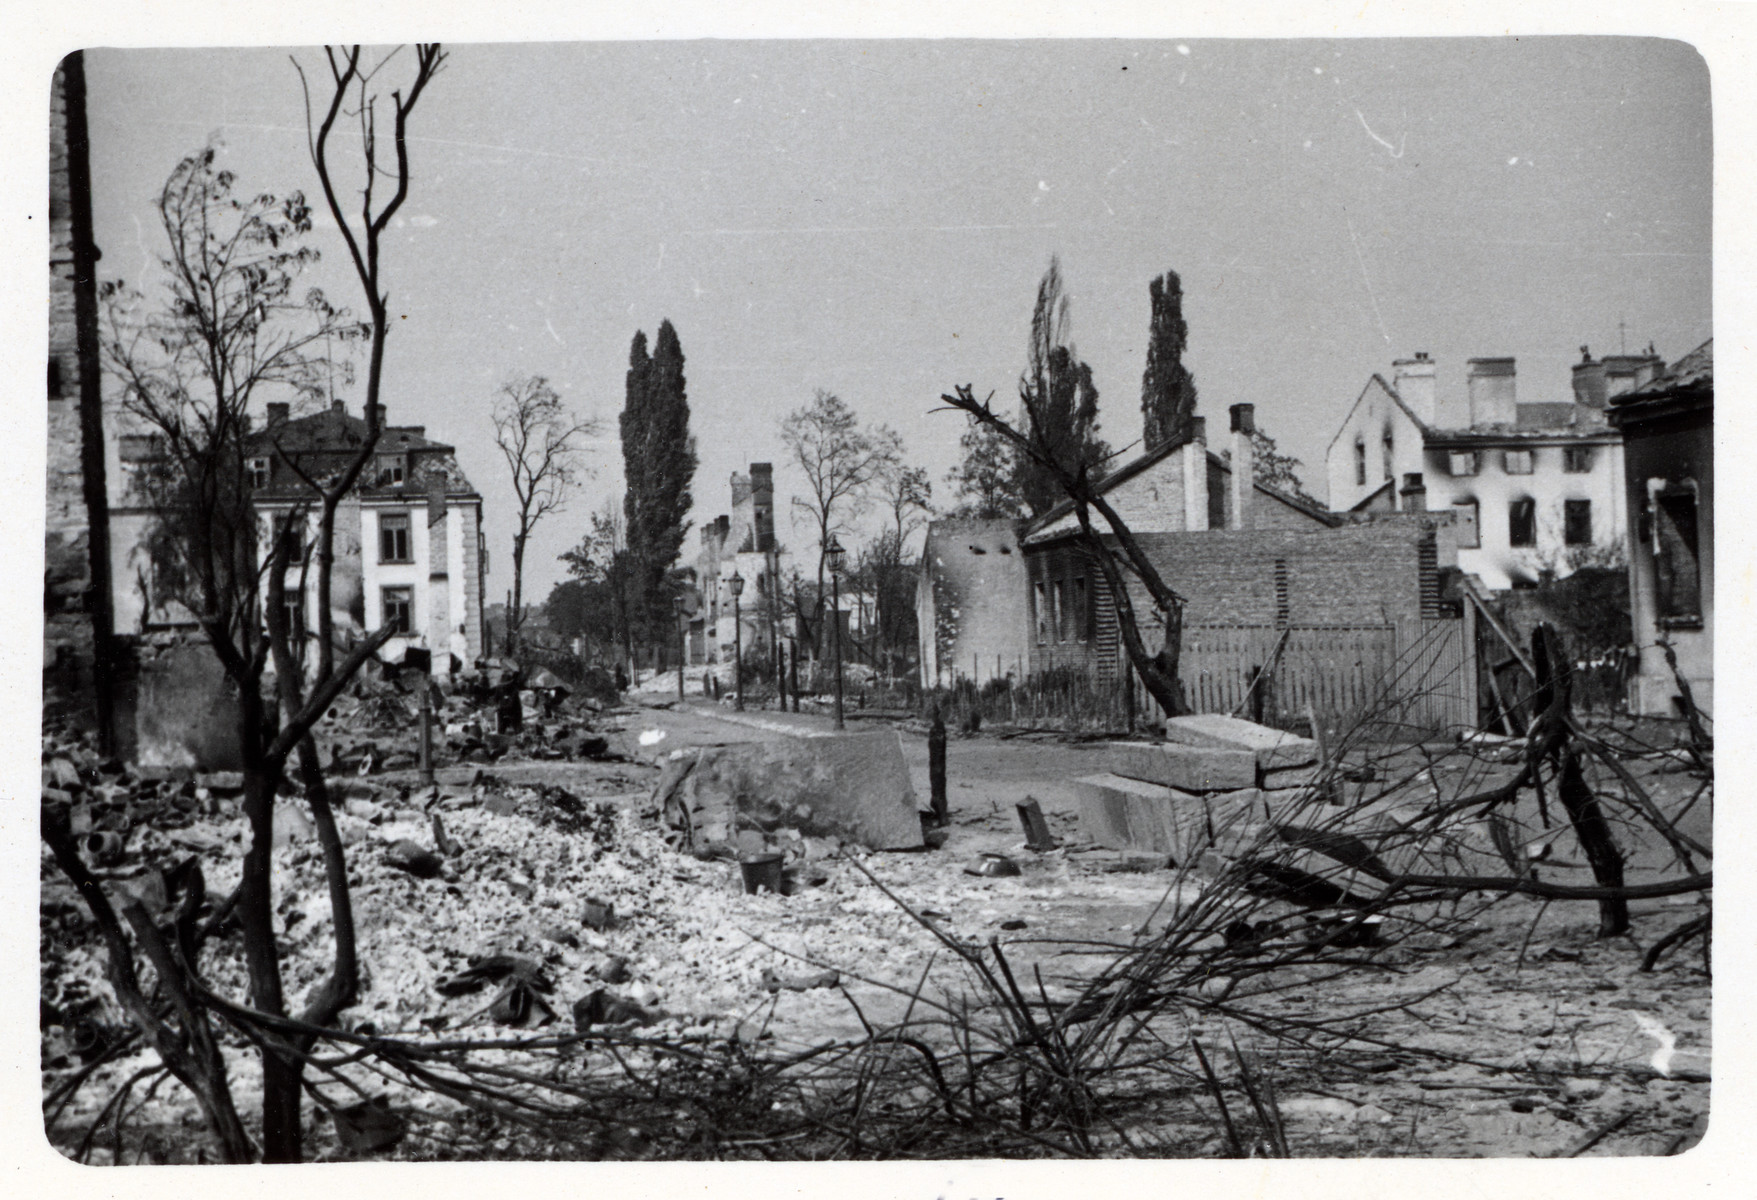 A view of bombed out Warsaw.